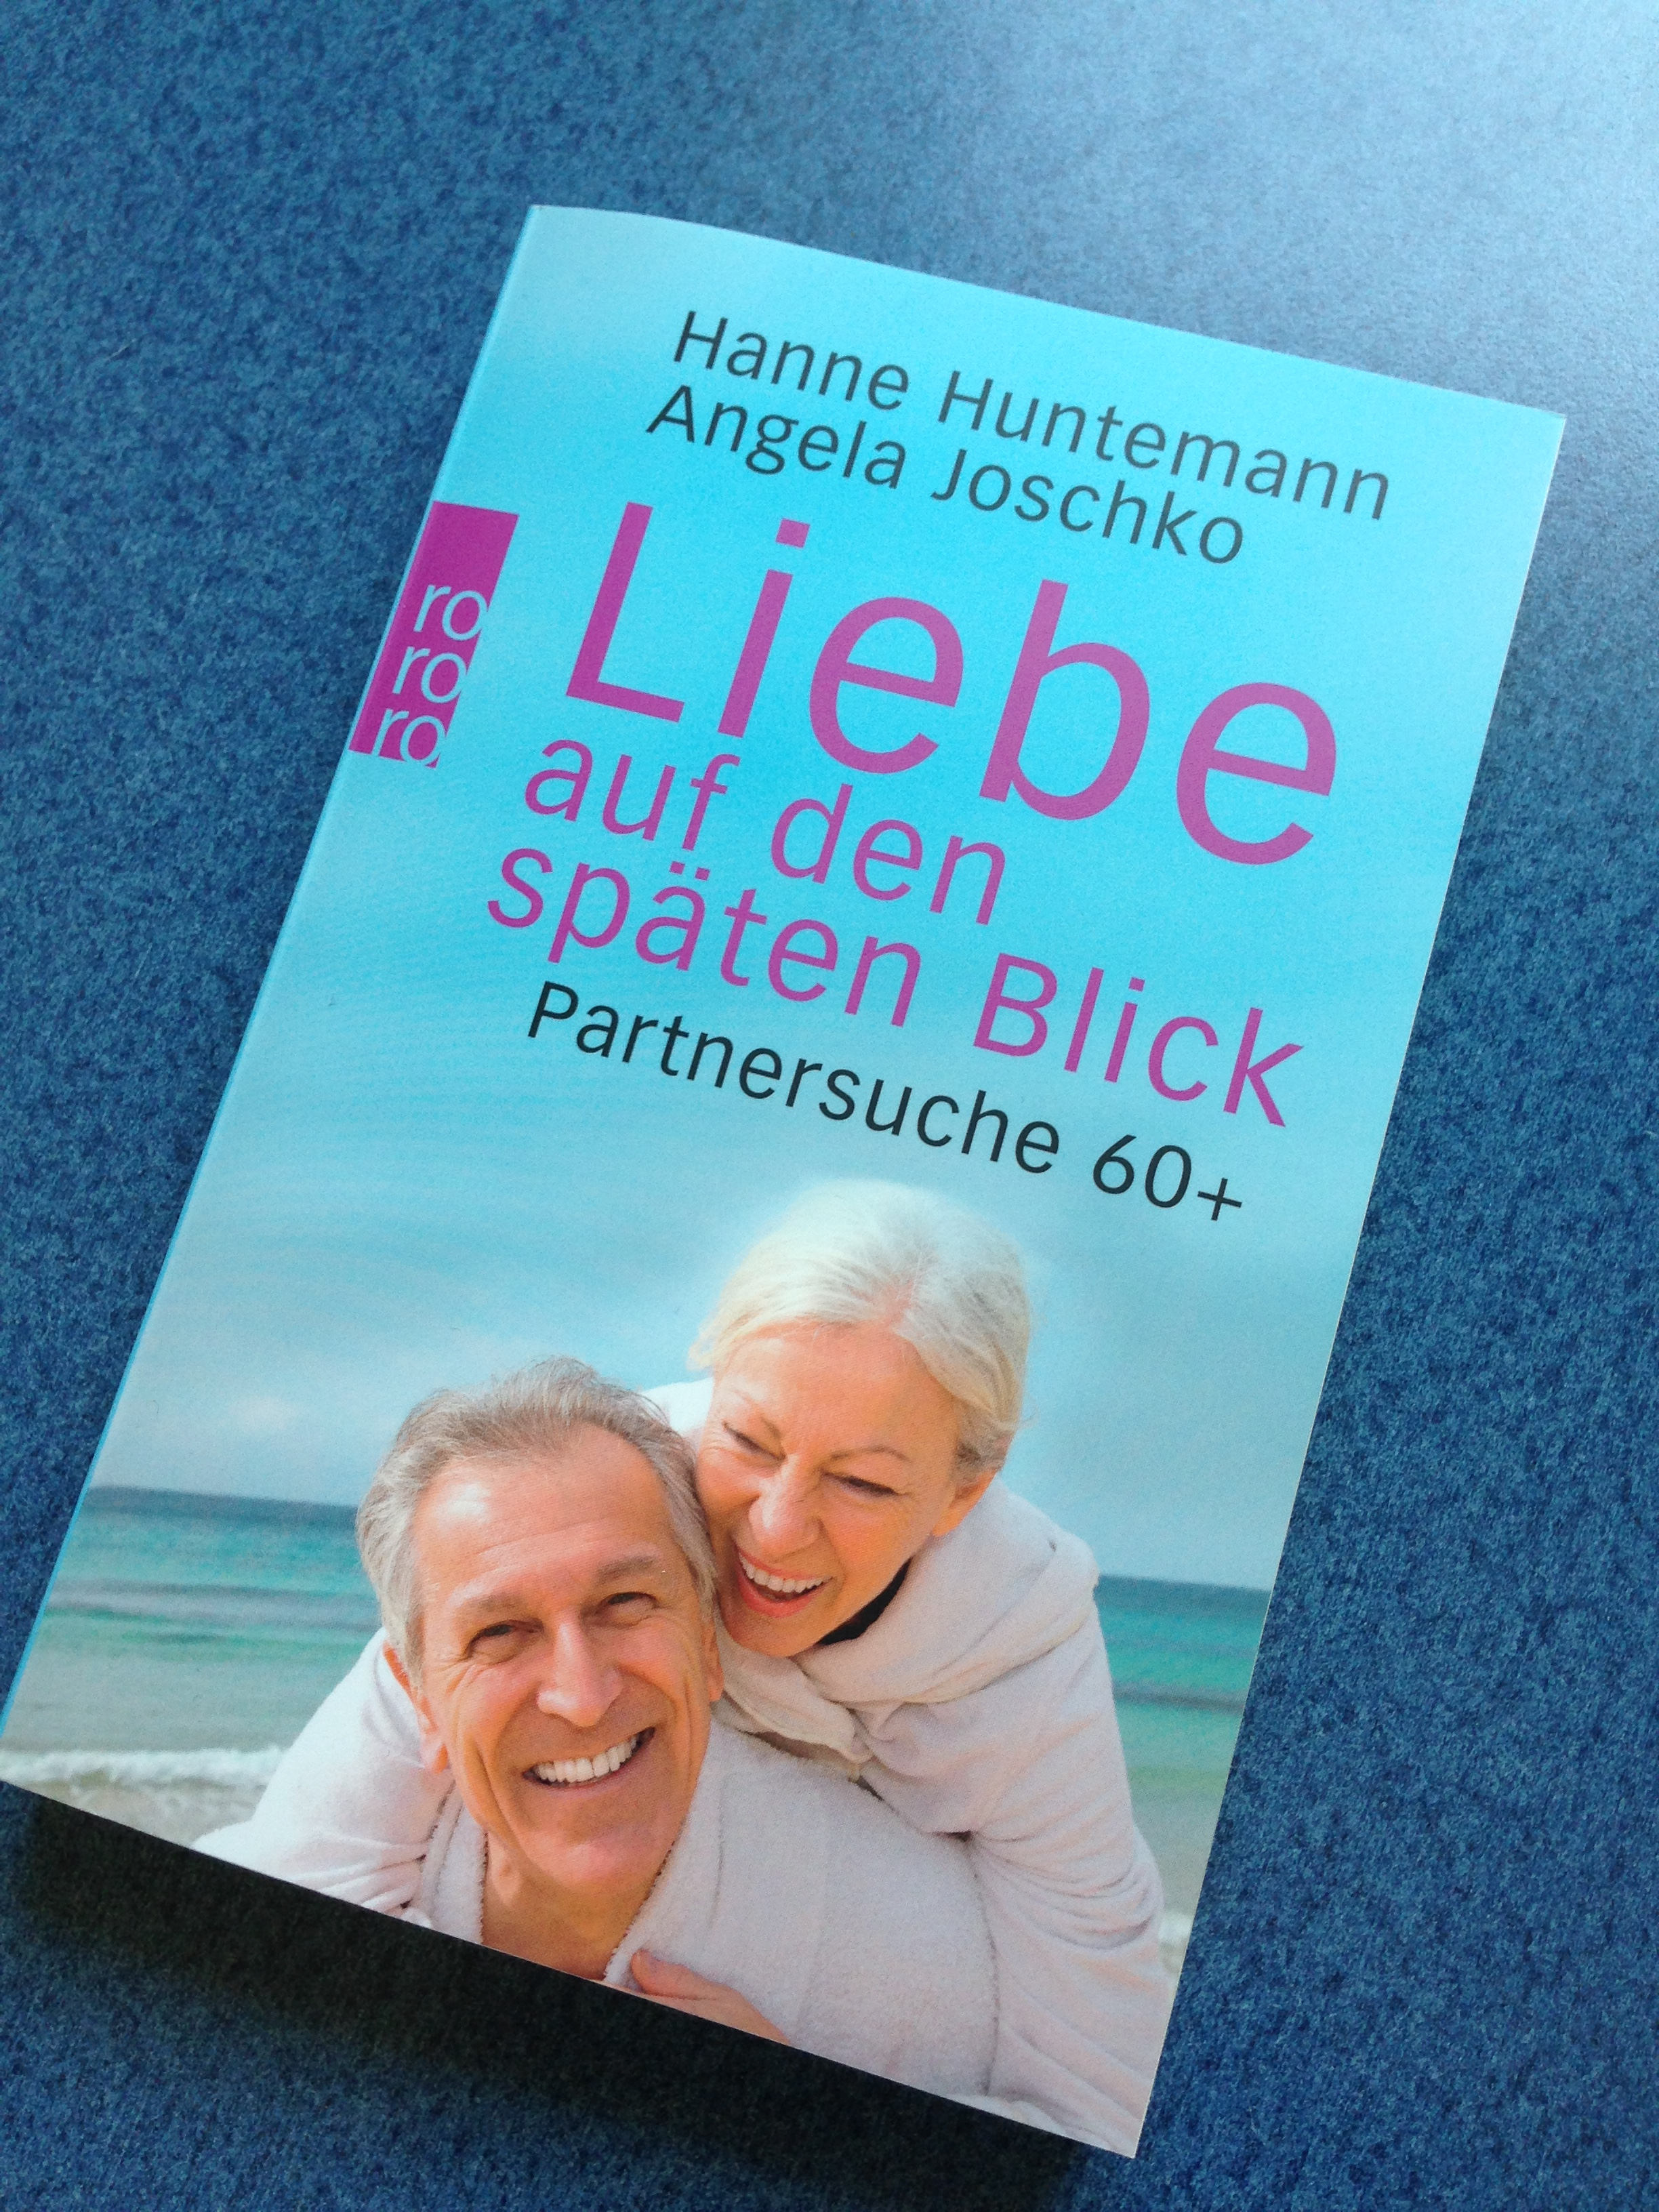 Huntemann partnersuche